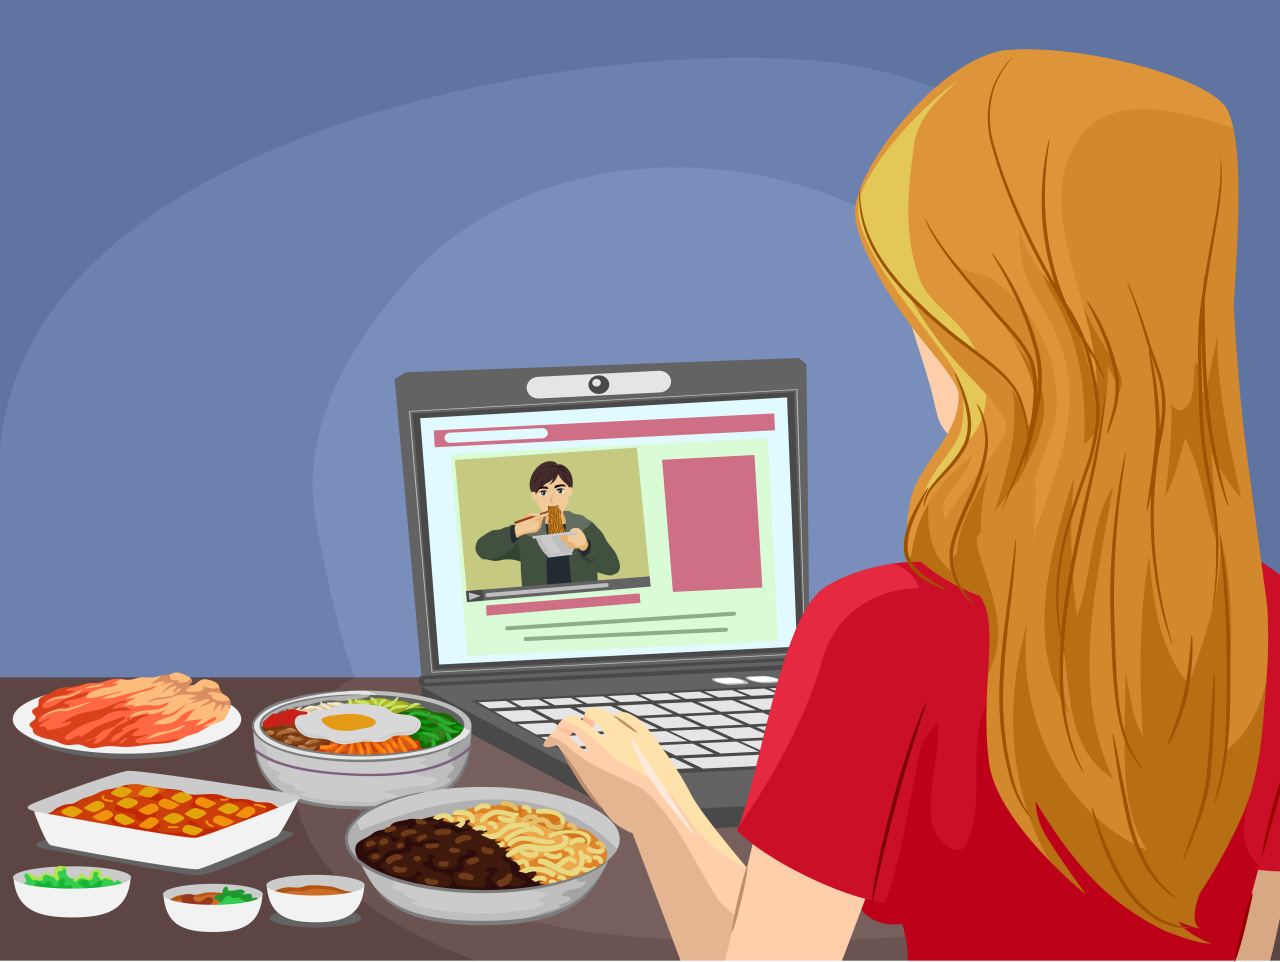 A woman eats dinner while watching meokbang on her laptop. (123rf)